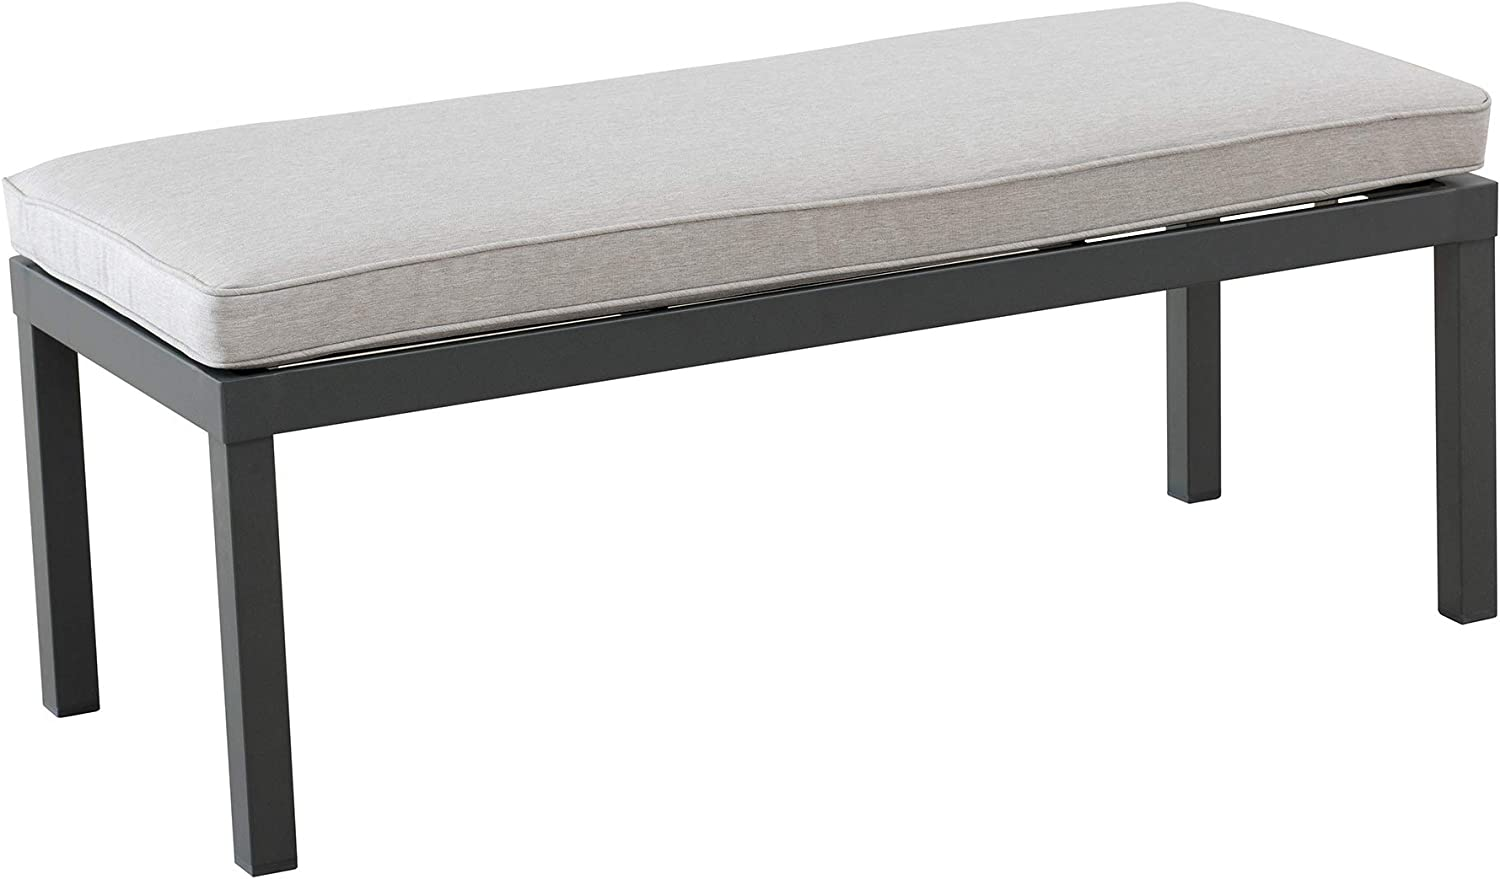 """Amazon Brand - Ravenna Home Archer Steel-Framed Outdoor Patio Dining Bench with Removable, Water-Resistant Cushion, 48""""W, Gray"""